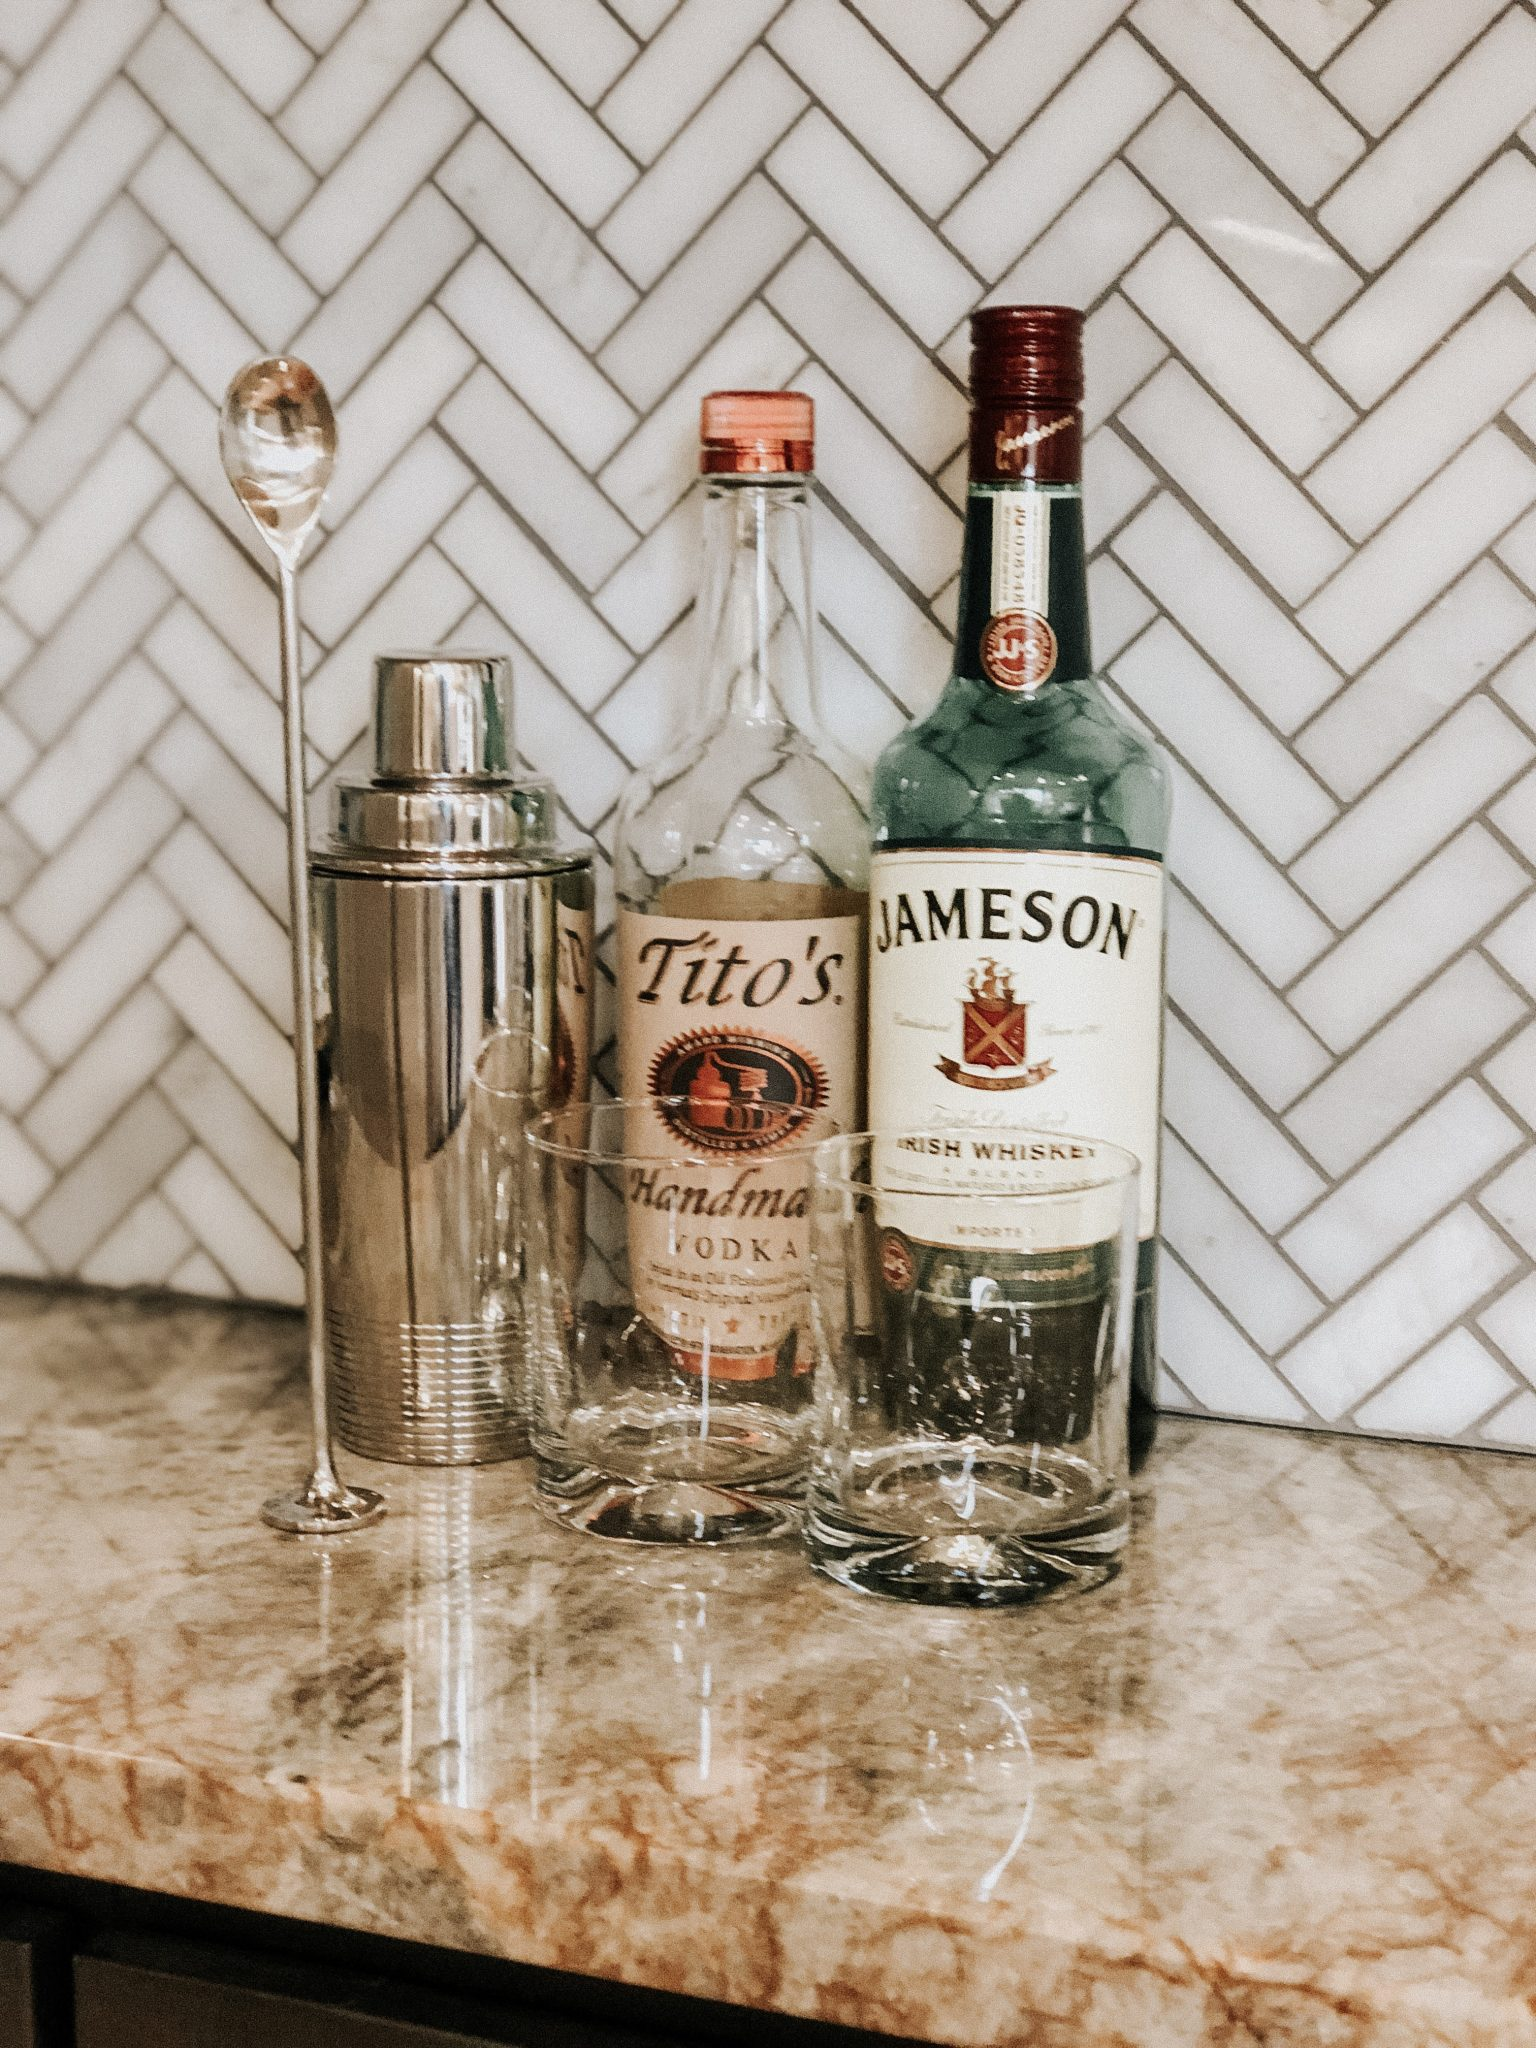 Simple Home Bar Setup | Daily Splendor Life and Style Blog | rocks glass, shaker, muddler, home bar, hostess, hosting #homebar #cocktails #entertaining